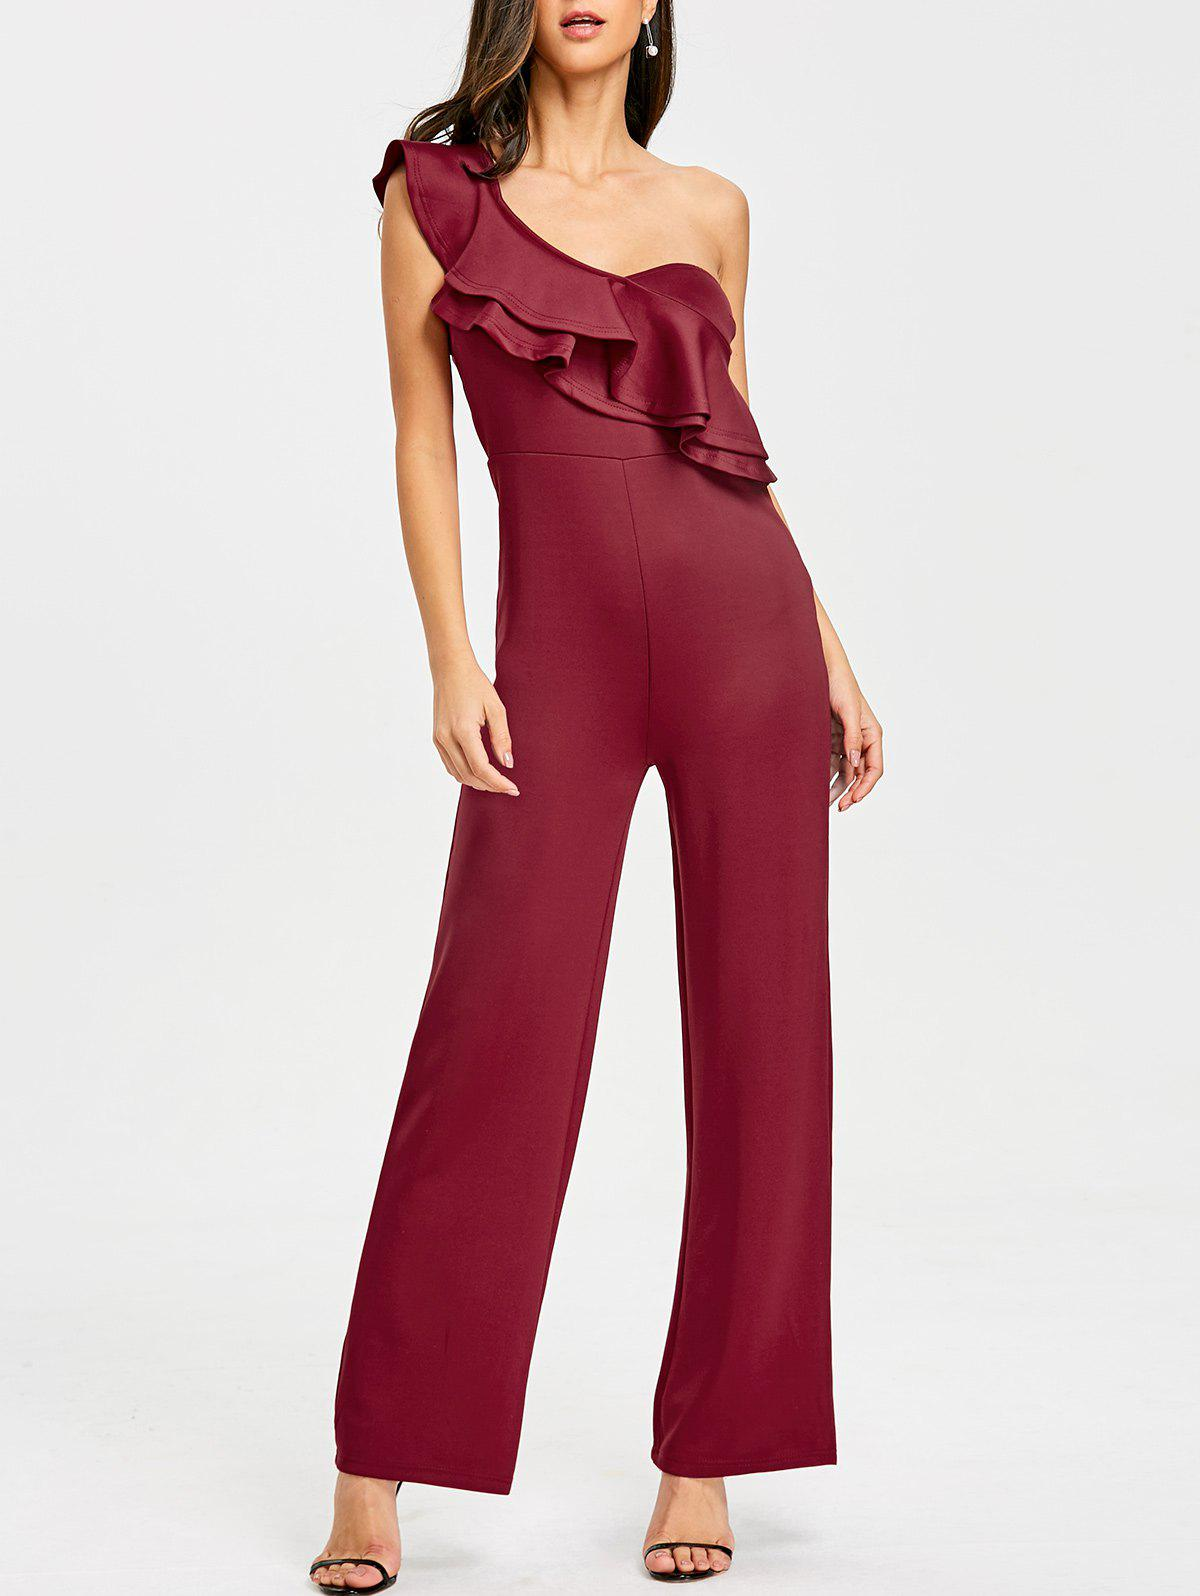 One Shoulder Flounce Wide Leg Jumpsuit - CLARET S